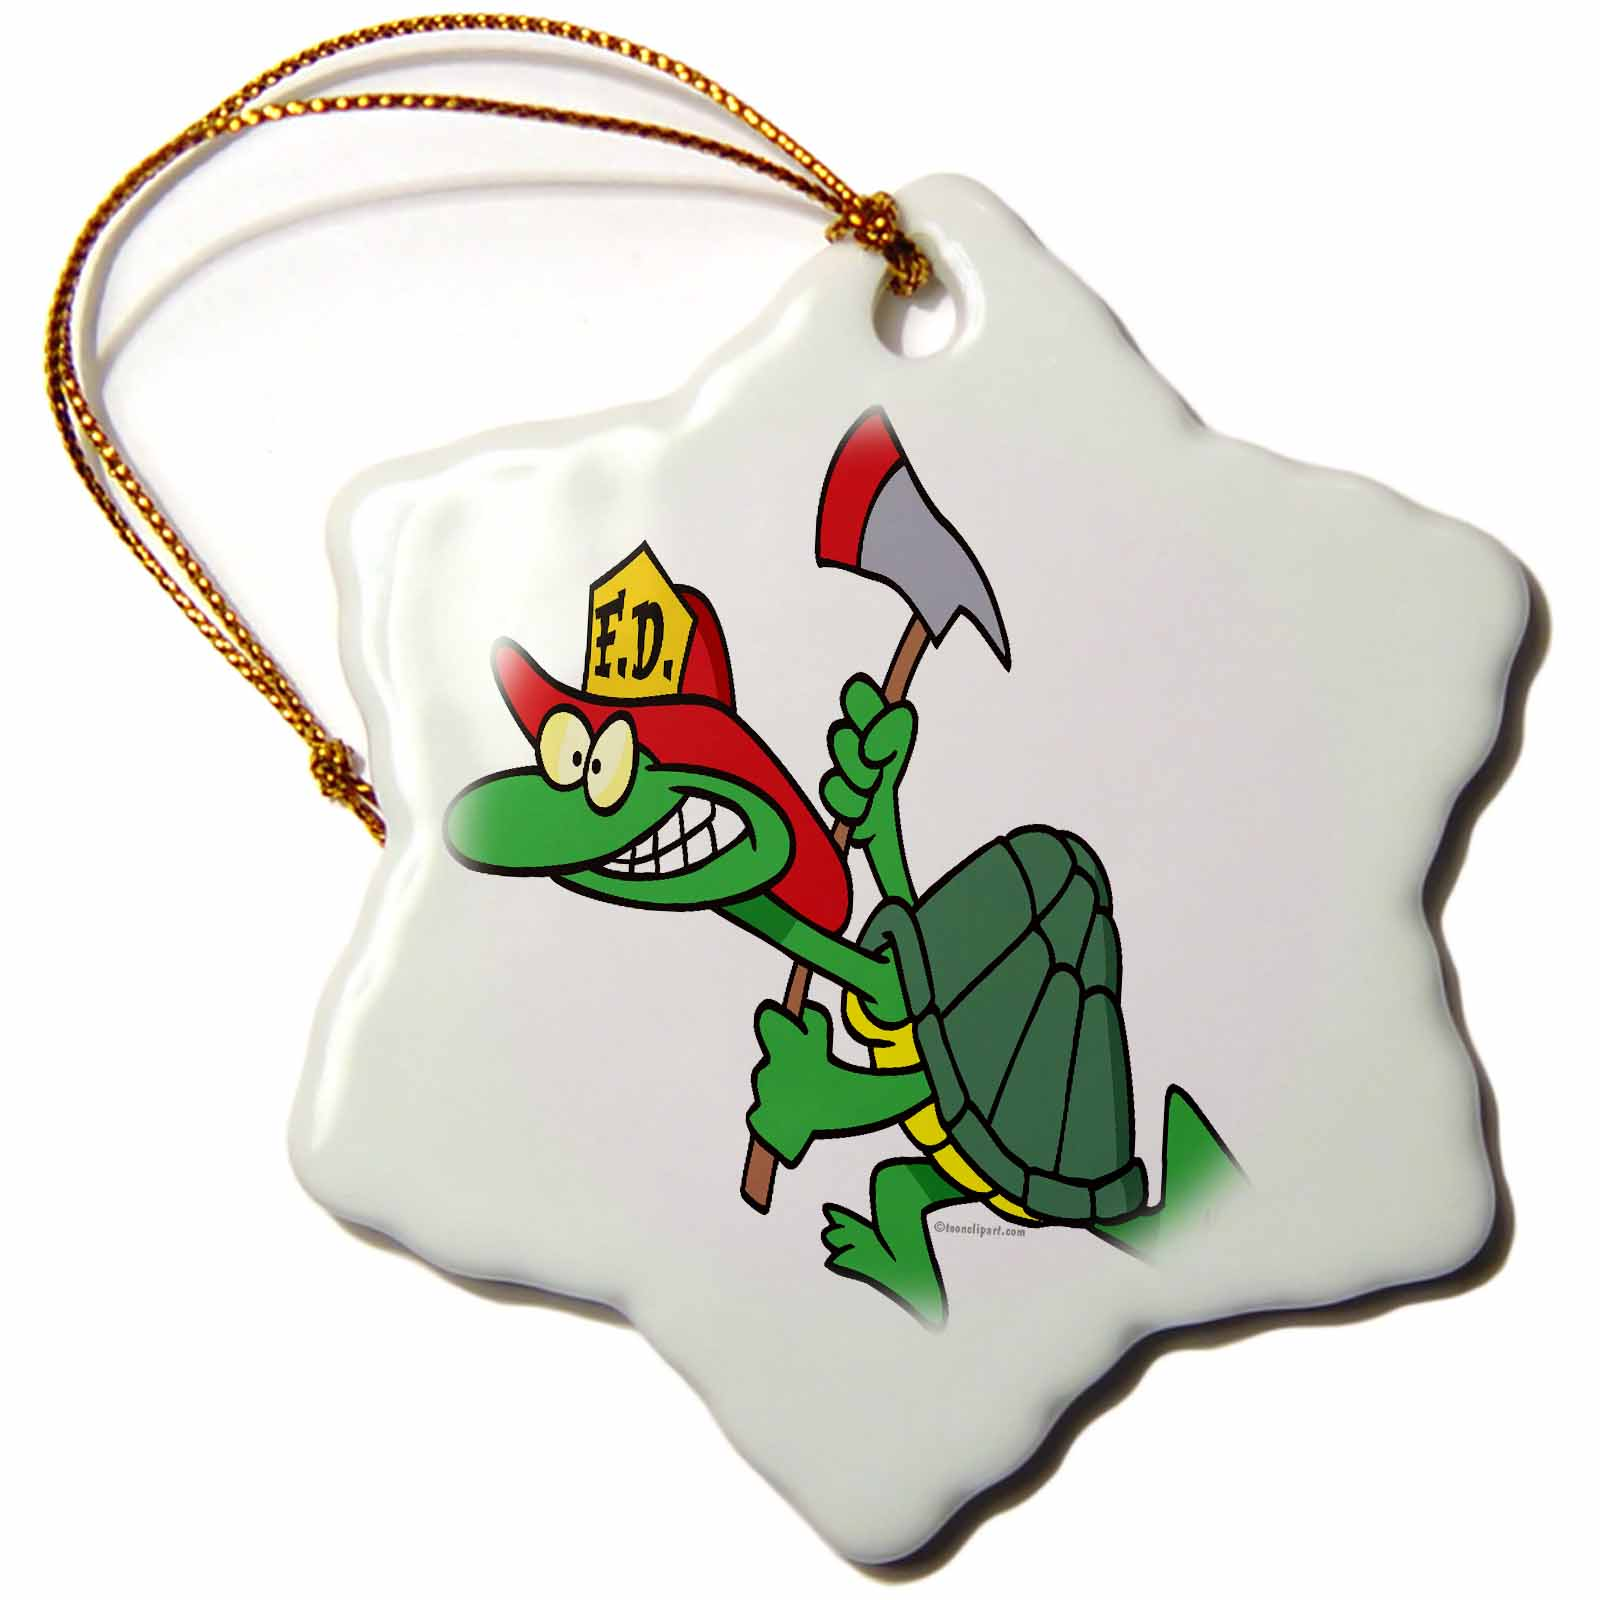 3dRose Funny Fireman Firefighter Turtle Cartoon, Snowflake Ornament, Porcelain, 3-inch